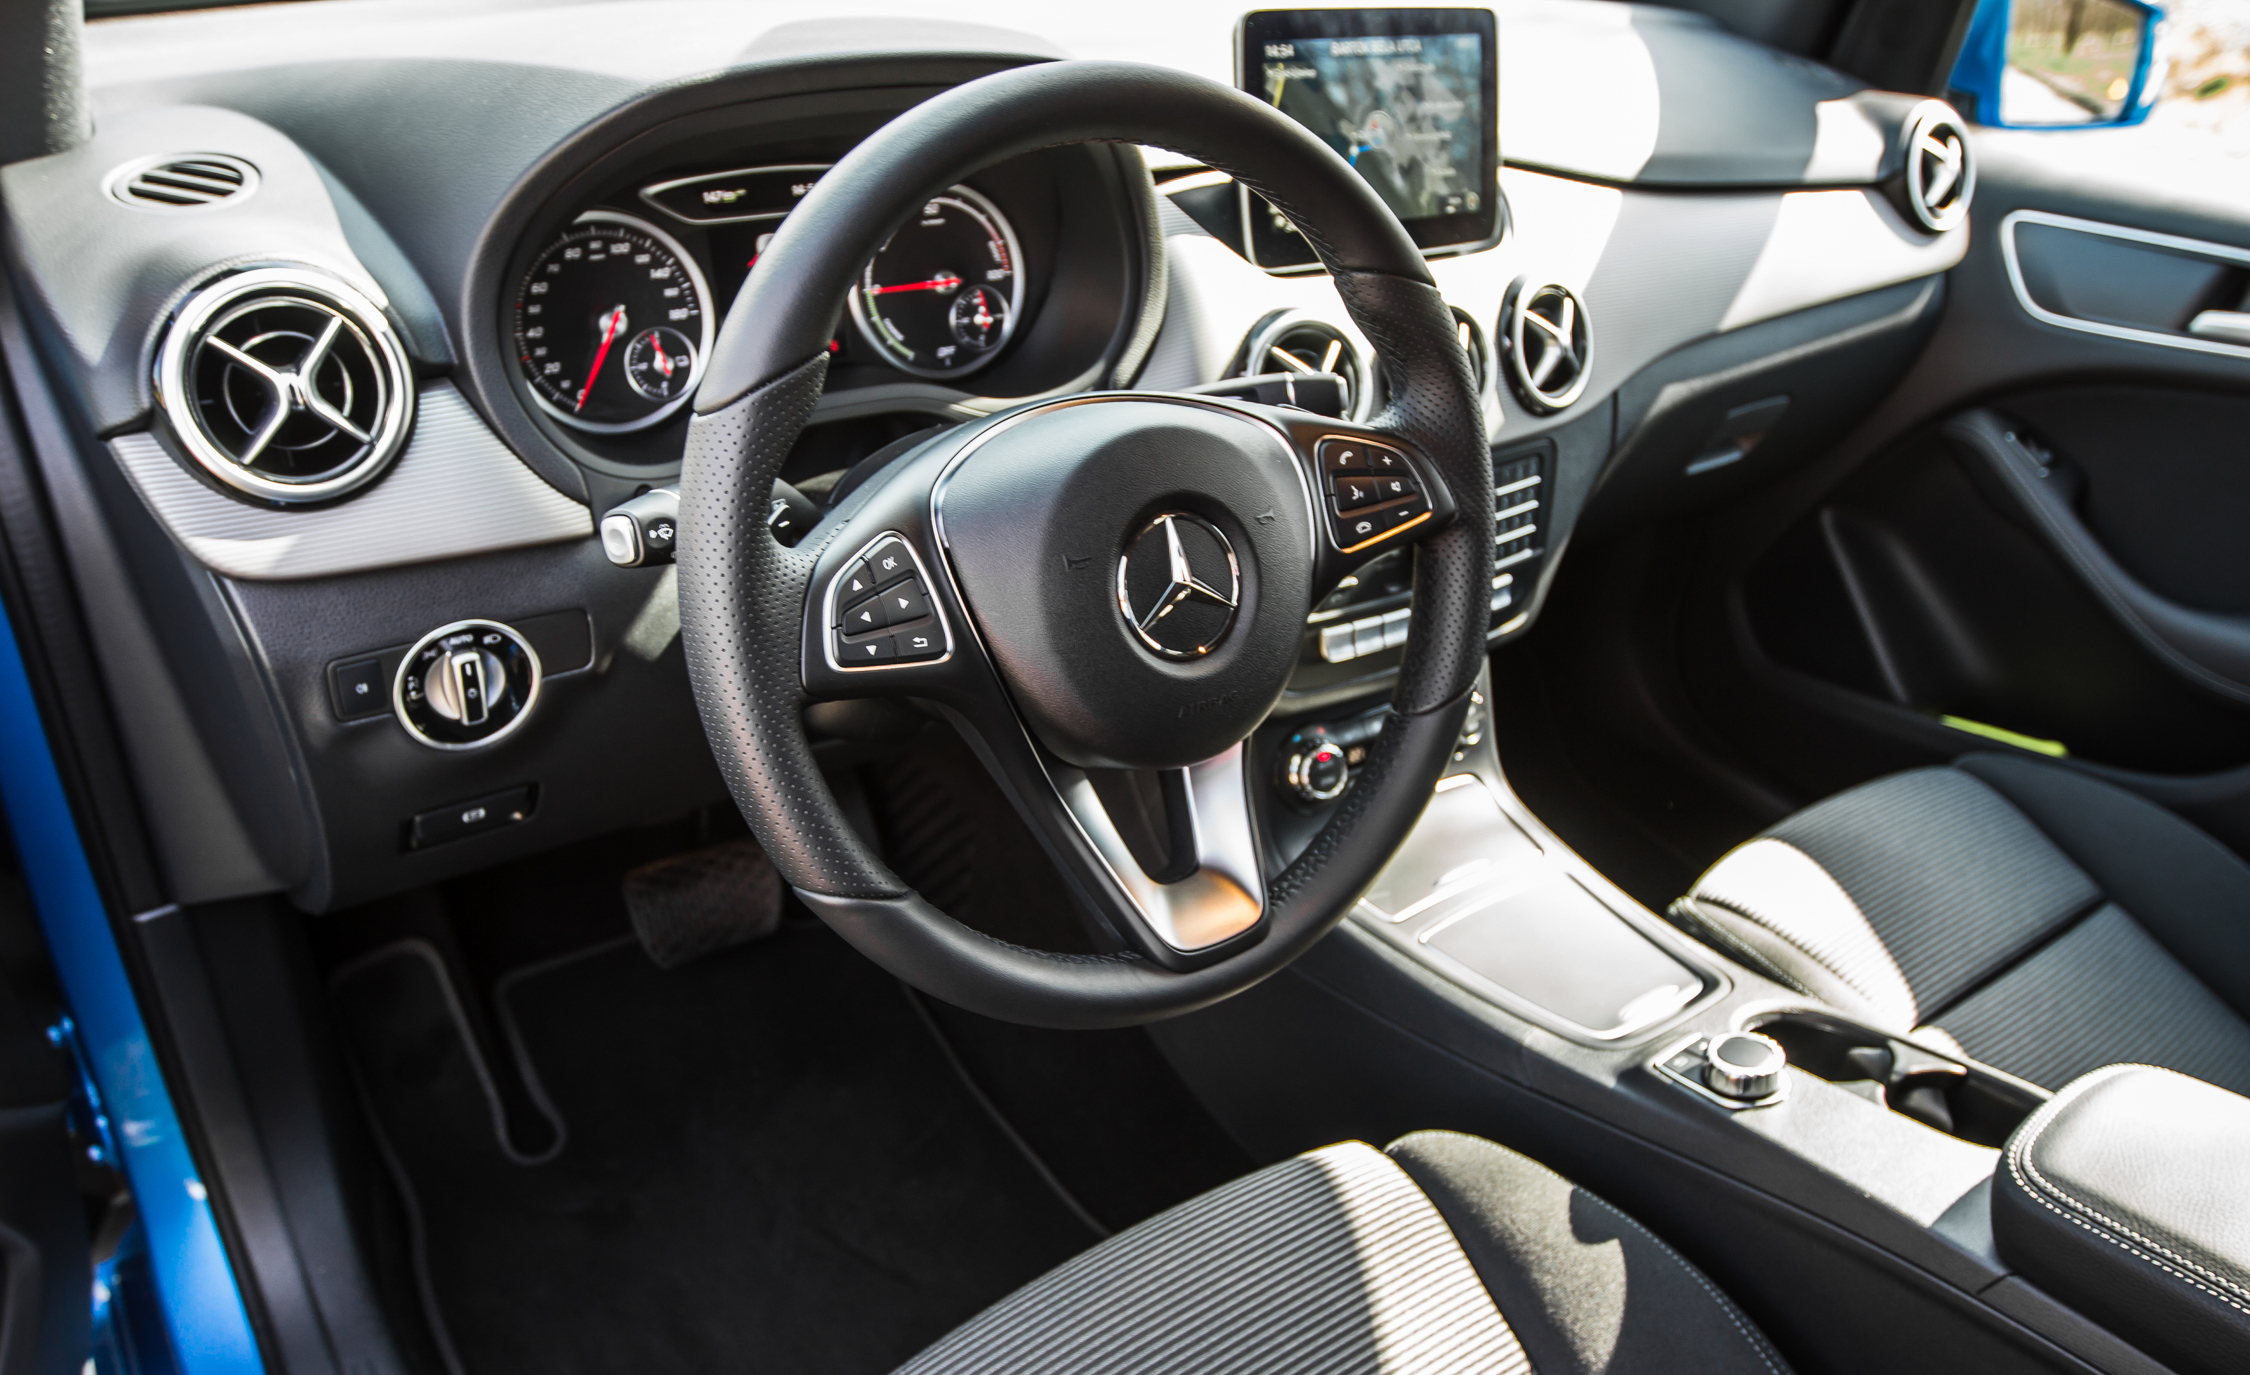 2017 Mercedes Benz B250e Interior View Driver Steering (Photo 23 of 24)